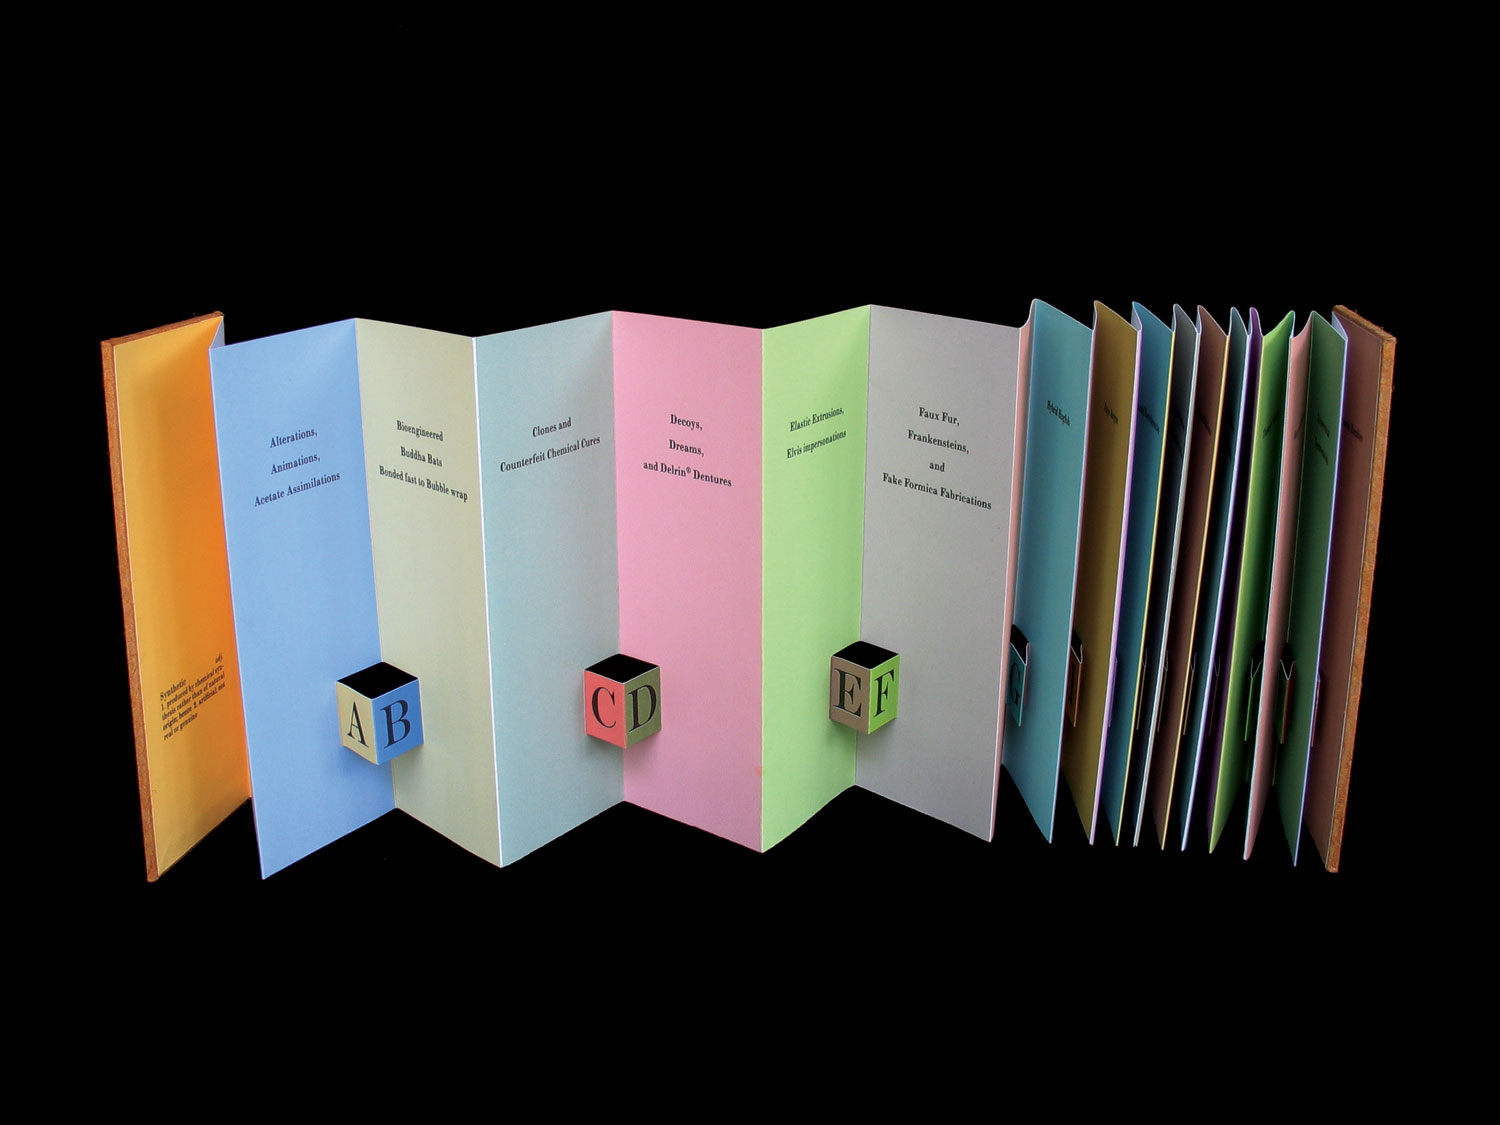 © 2002 Carol Barton,  Alphabetica Synthetica, accordion book structure with pop-ups and laser printing